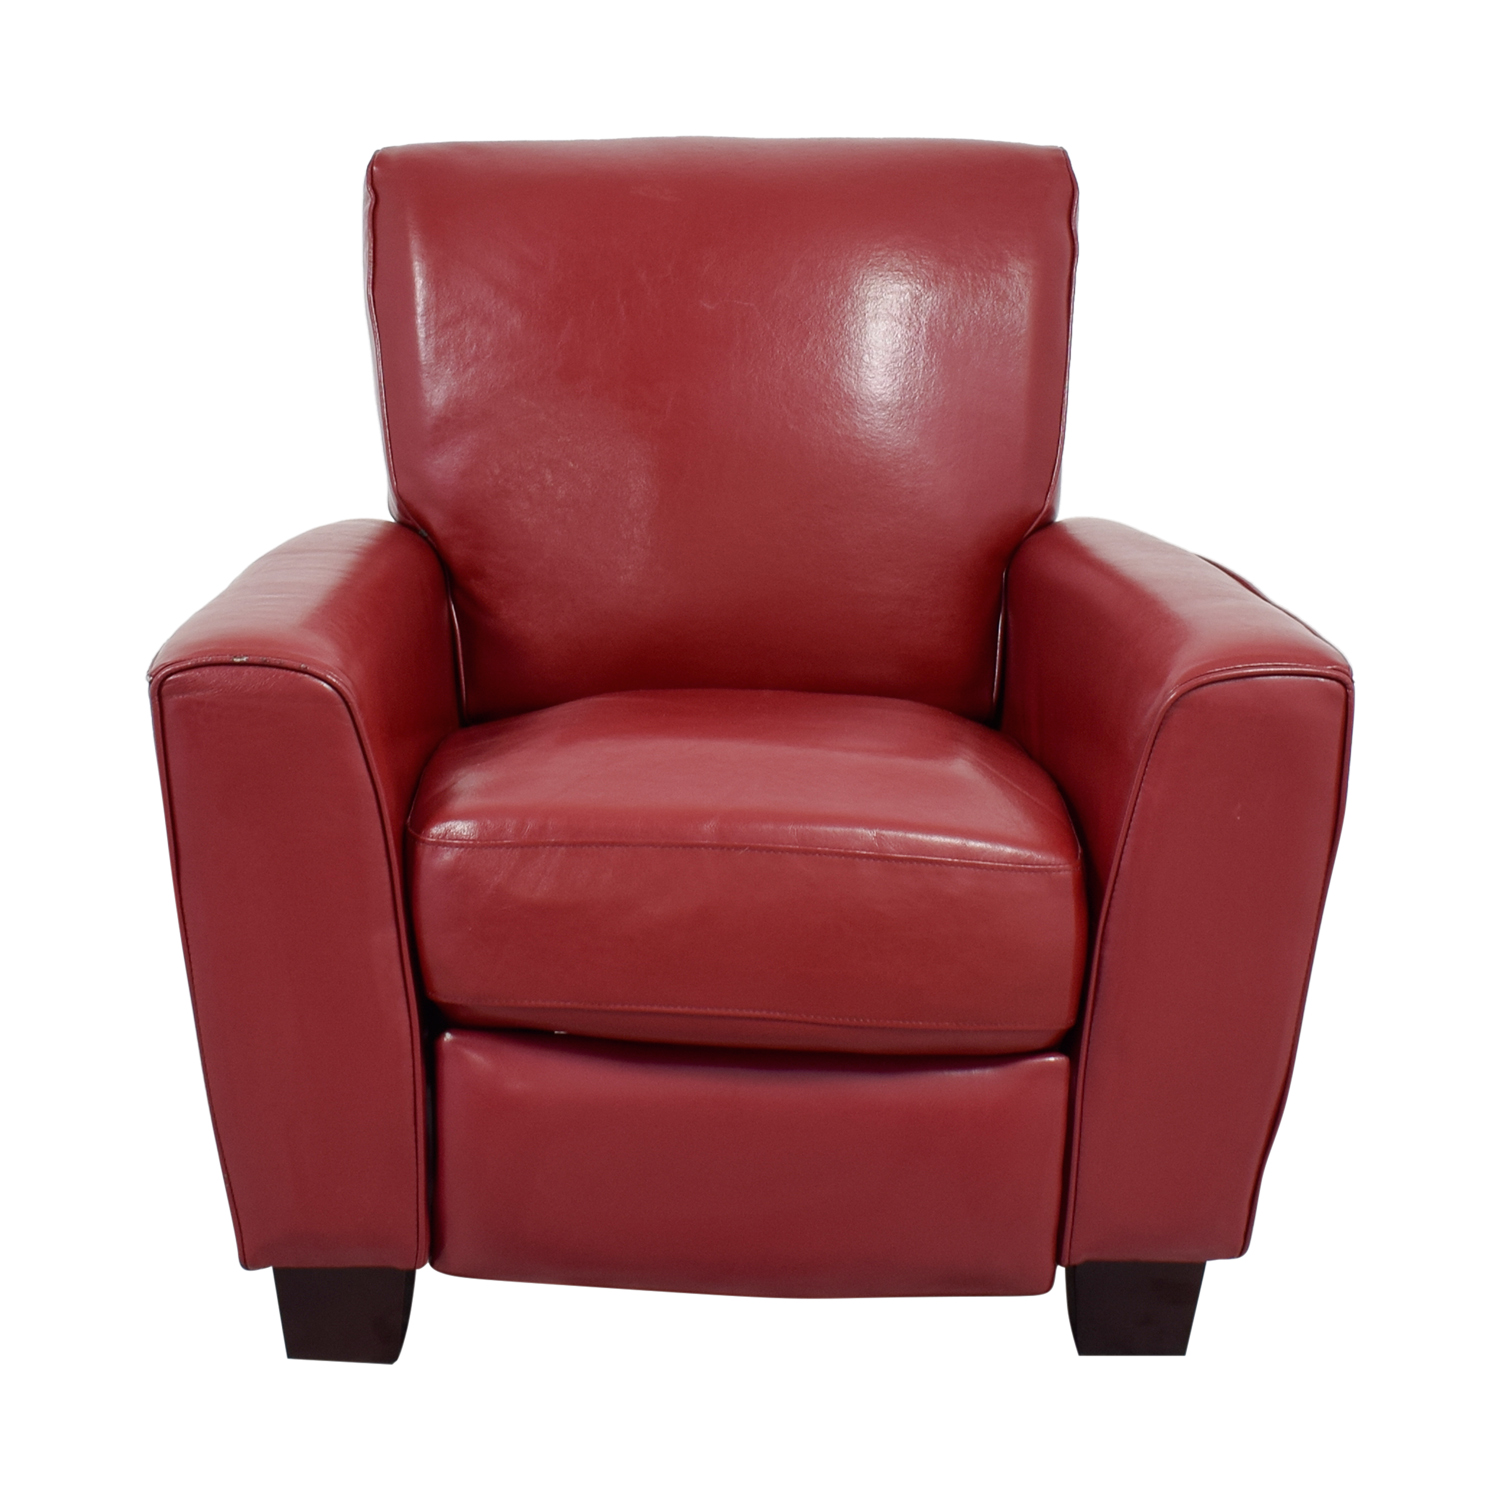 Bob's Furniture Bob's Furniture Gelati Recliner in Dark Red Recliners